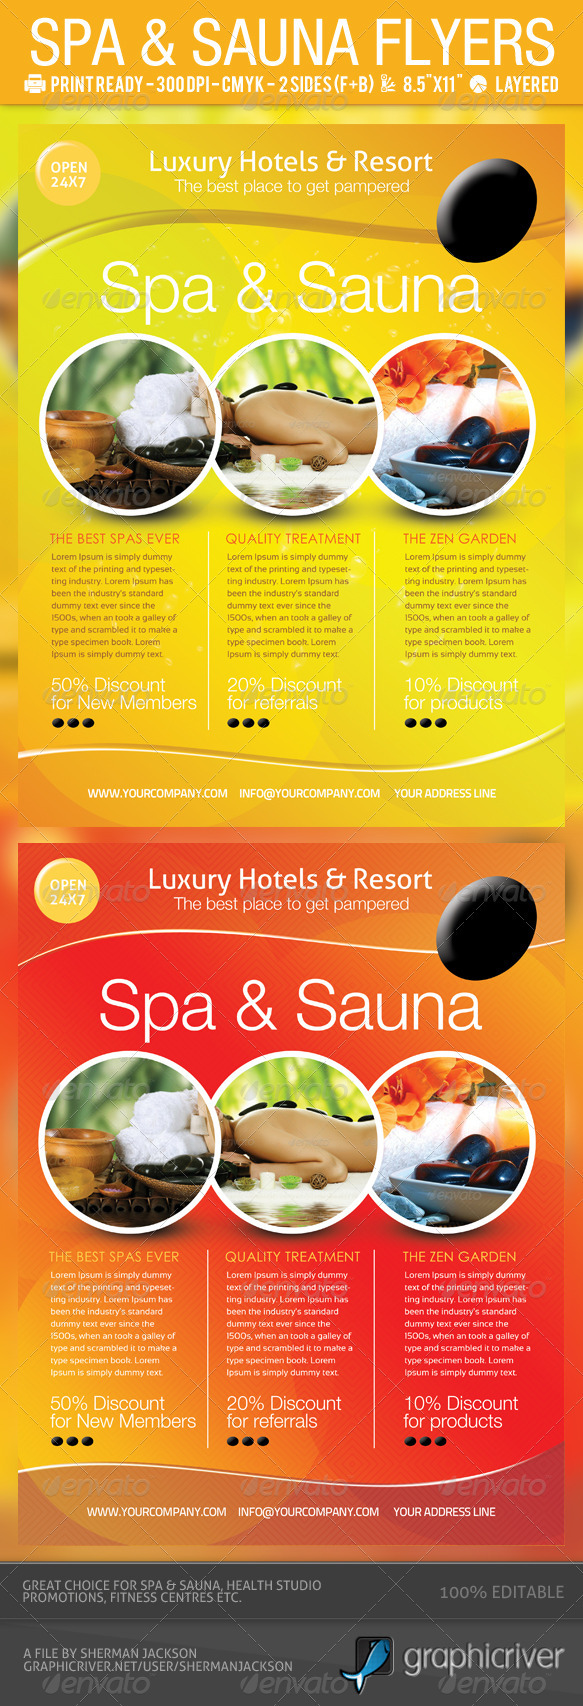 GraphicRiver Spa & Sauna Flyers PSD Template 2575820